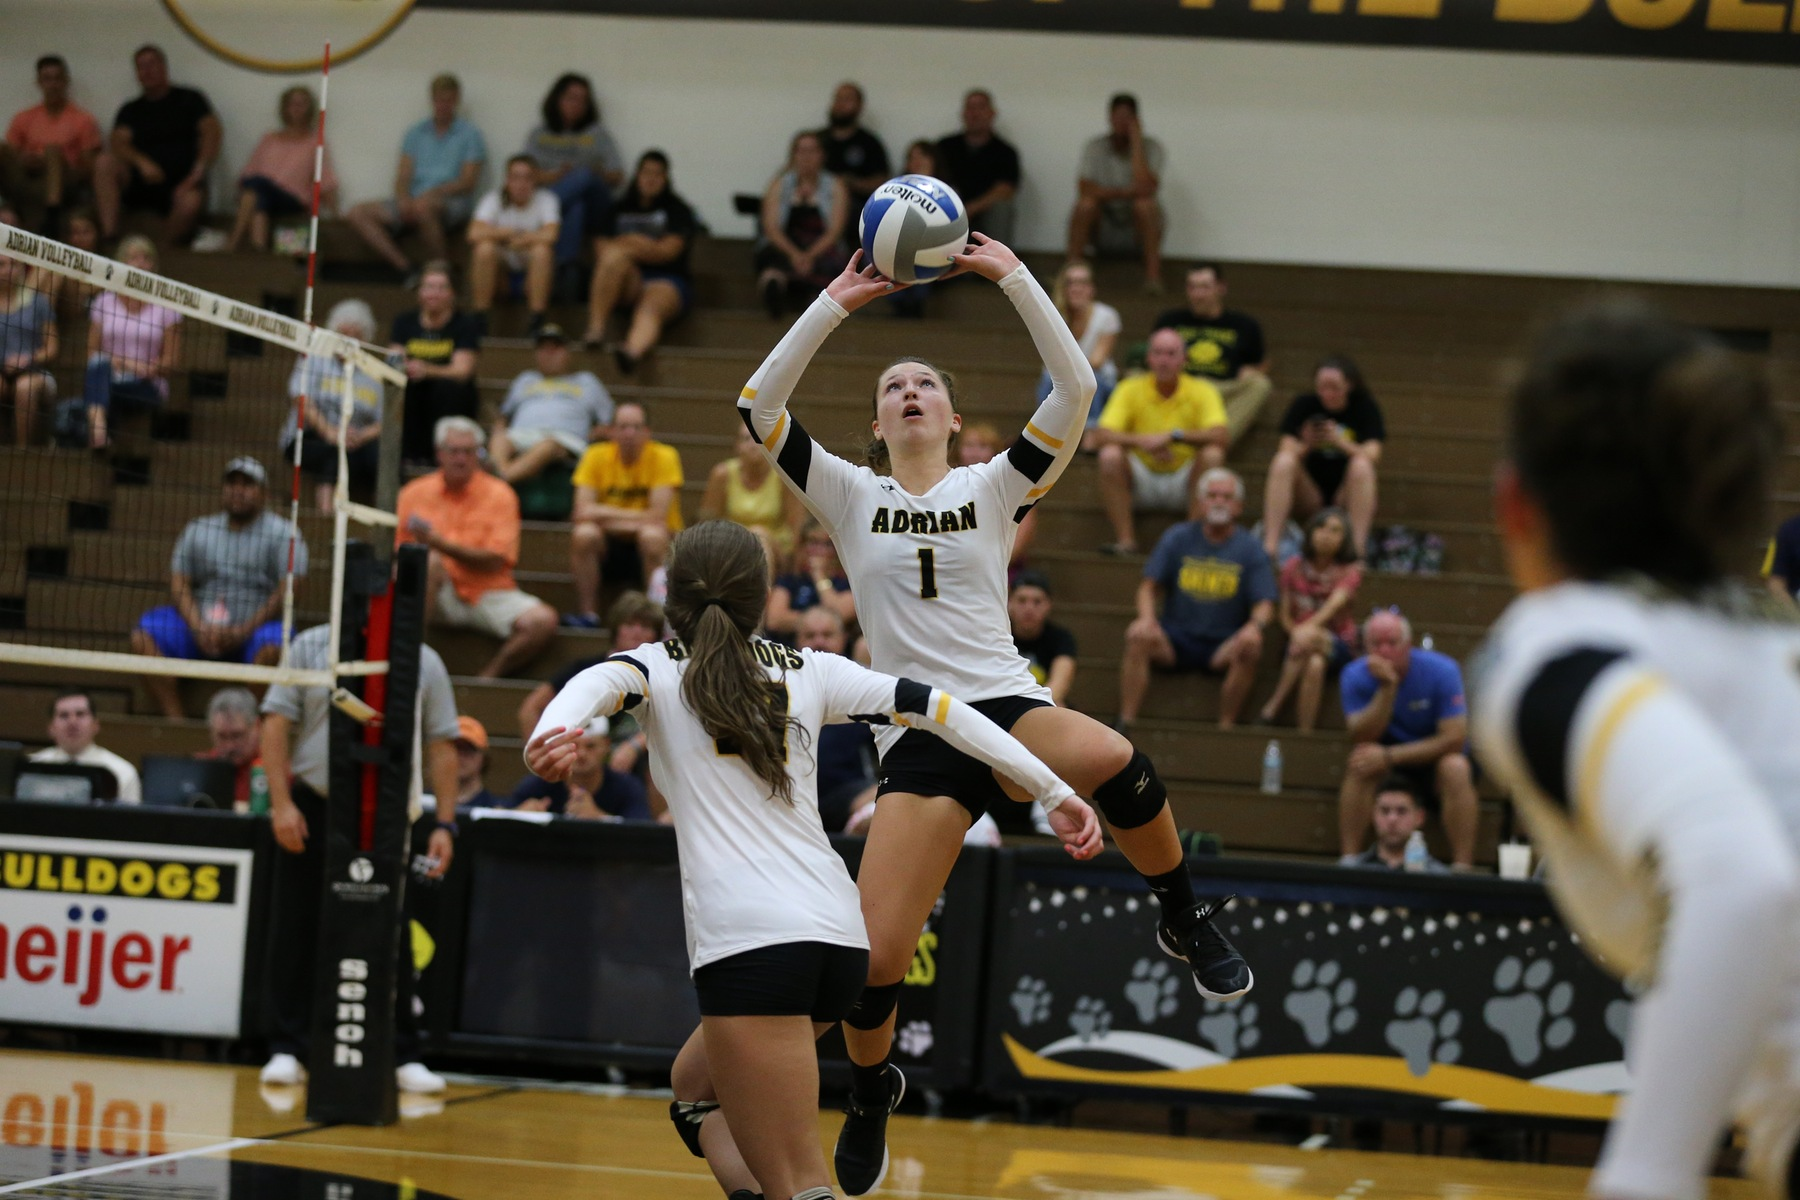 Bulldogs Fall in Five-Set Battle with Wooster